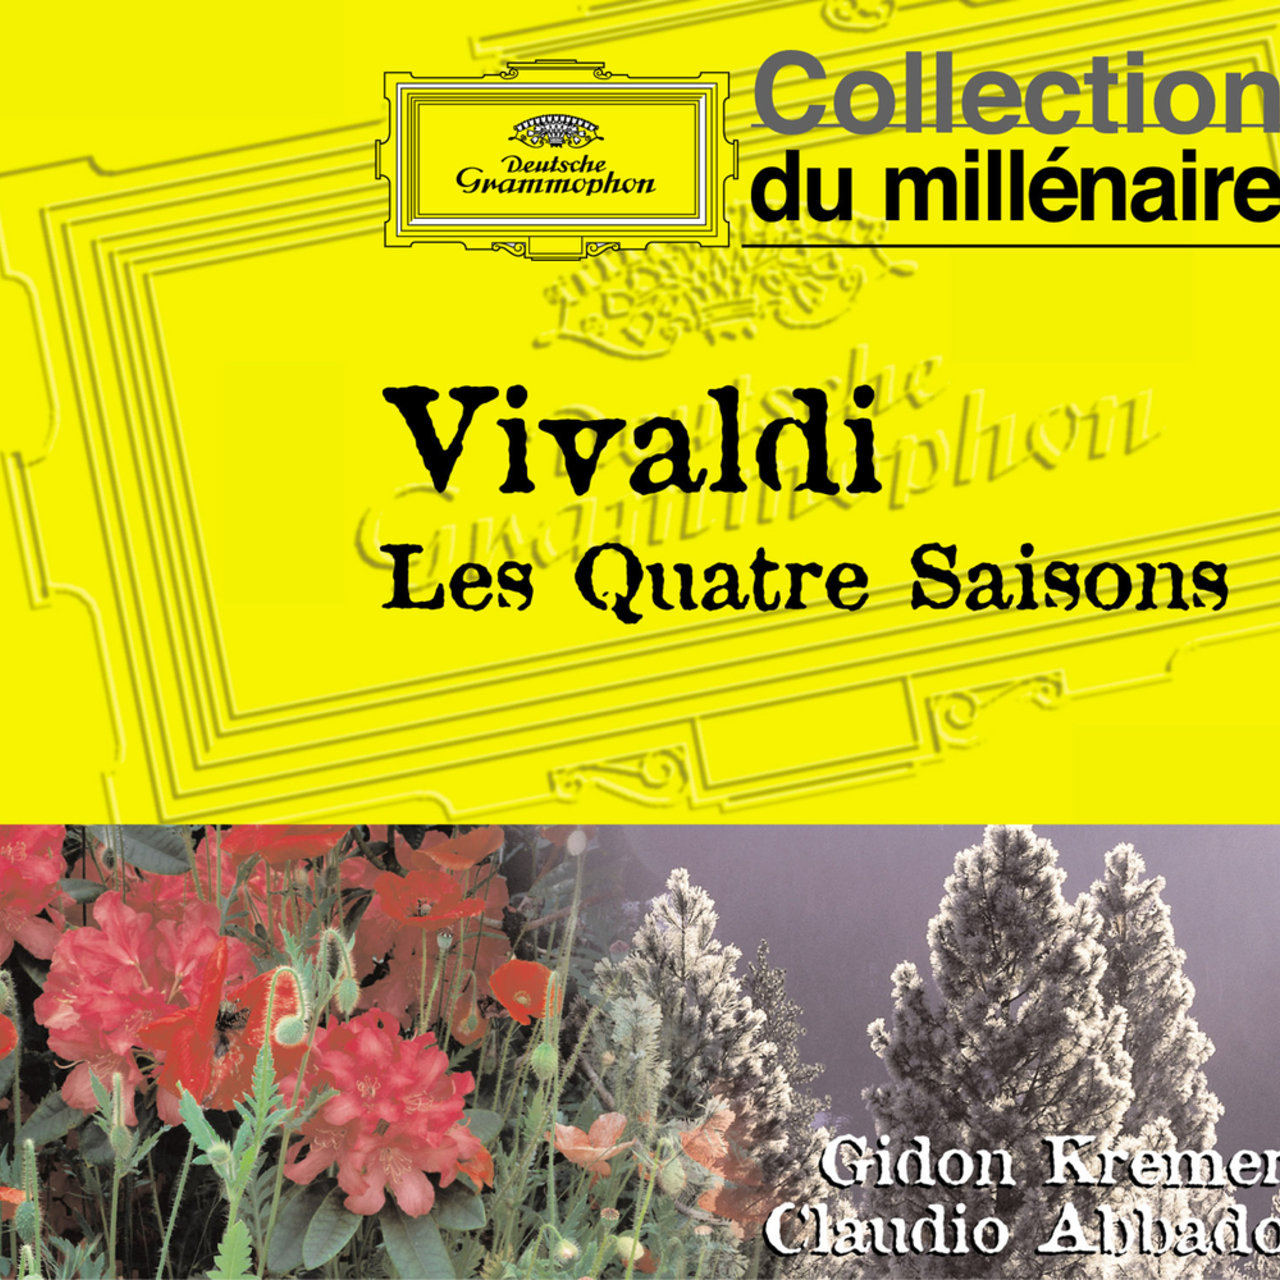 Vivaldi: The Four Seasons; Flute Concertos RV 433, RV 439, RV 428